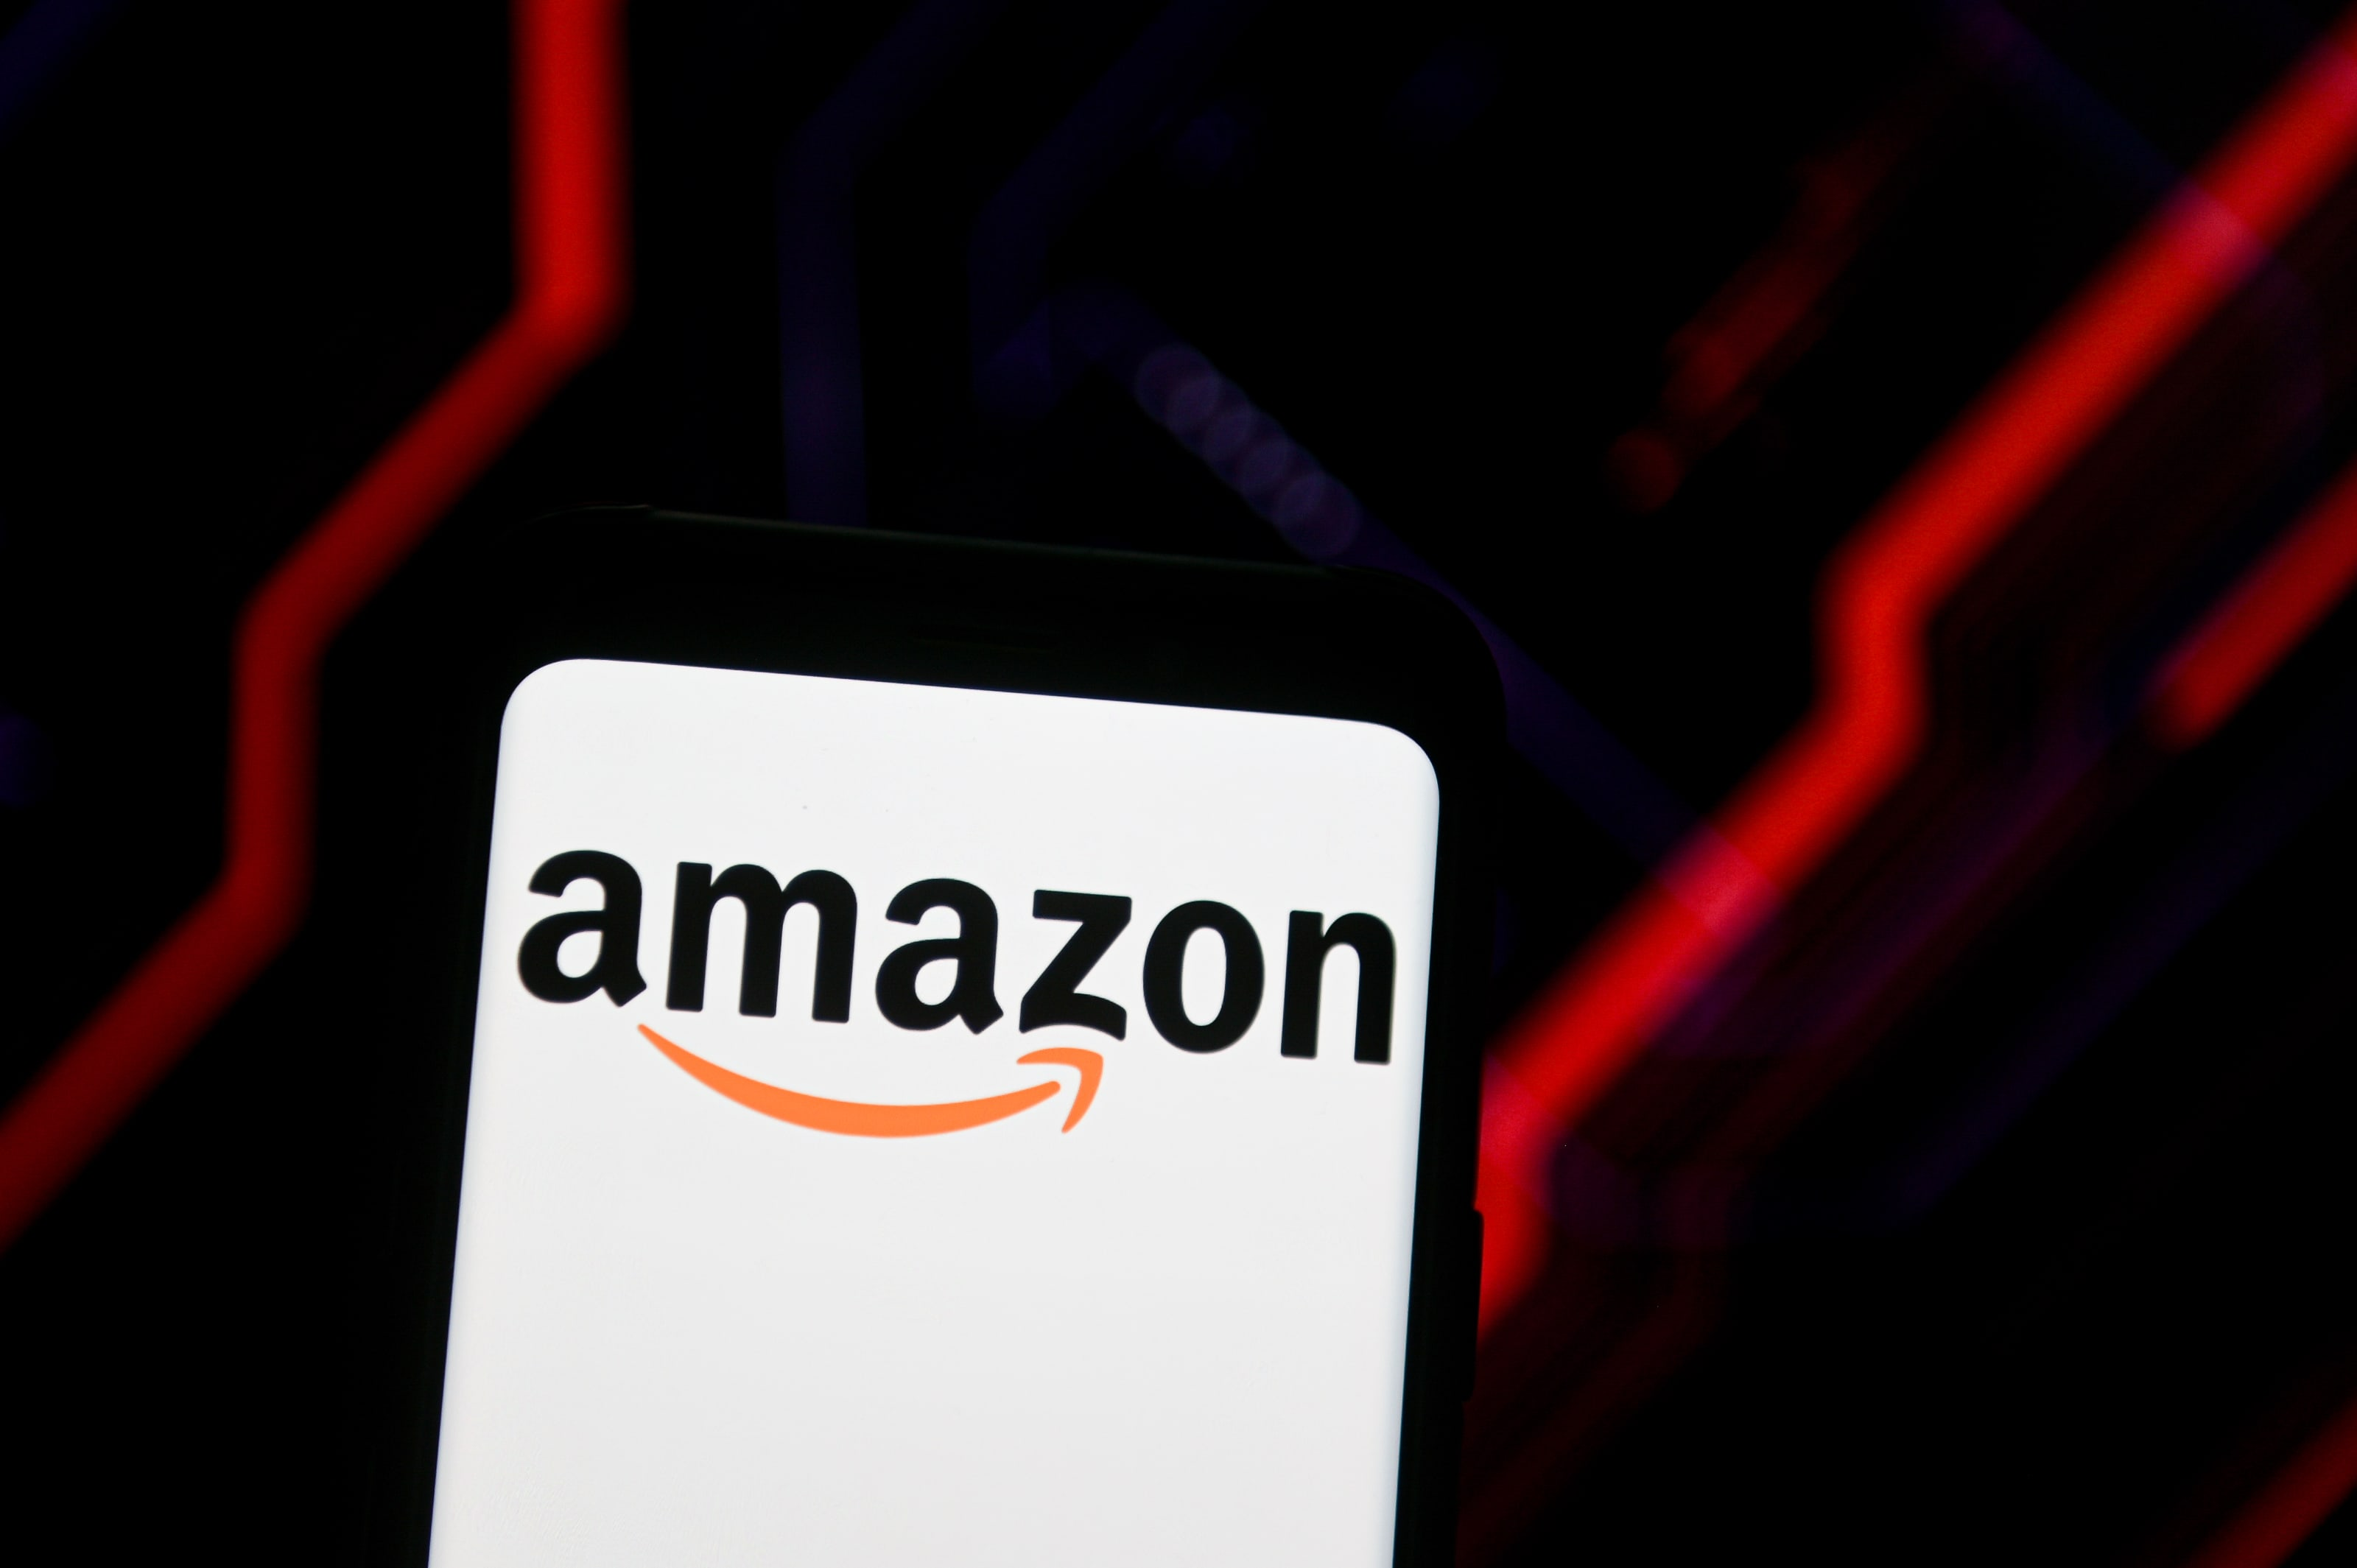 Amazon's brand value tops $400 billion, boosted by the coronavirus pandemic: Survey - CNBC